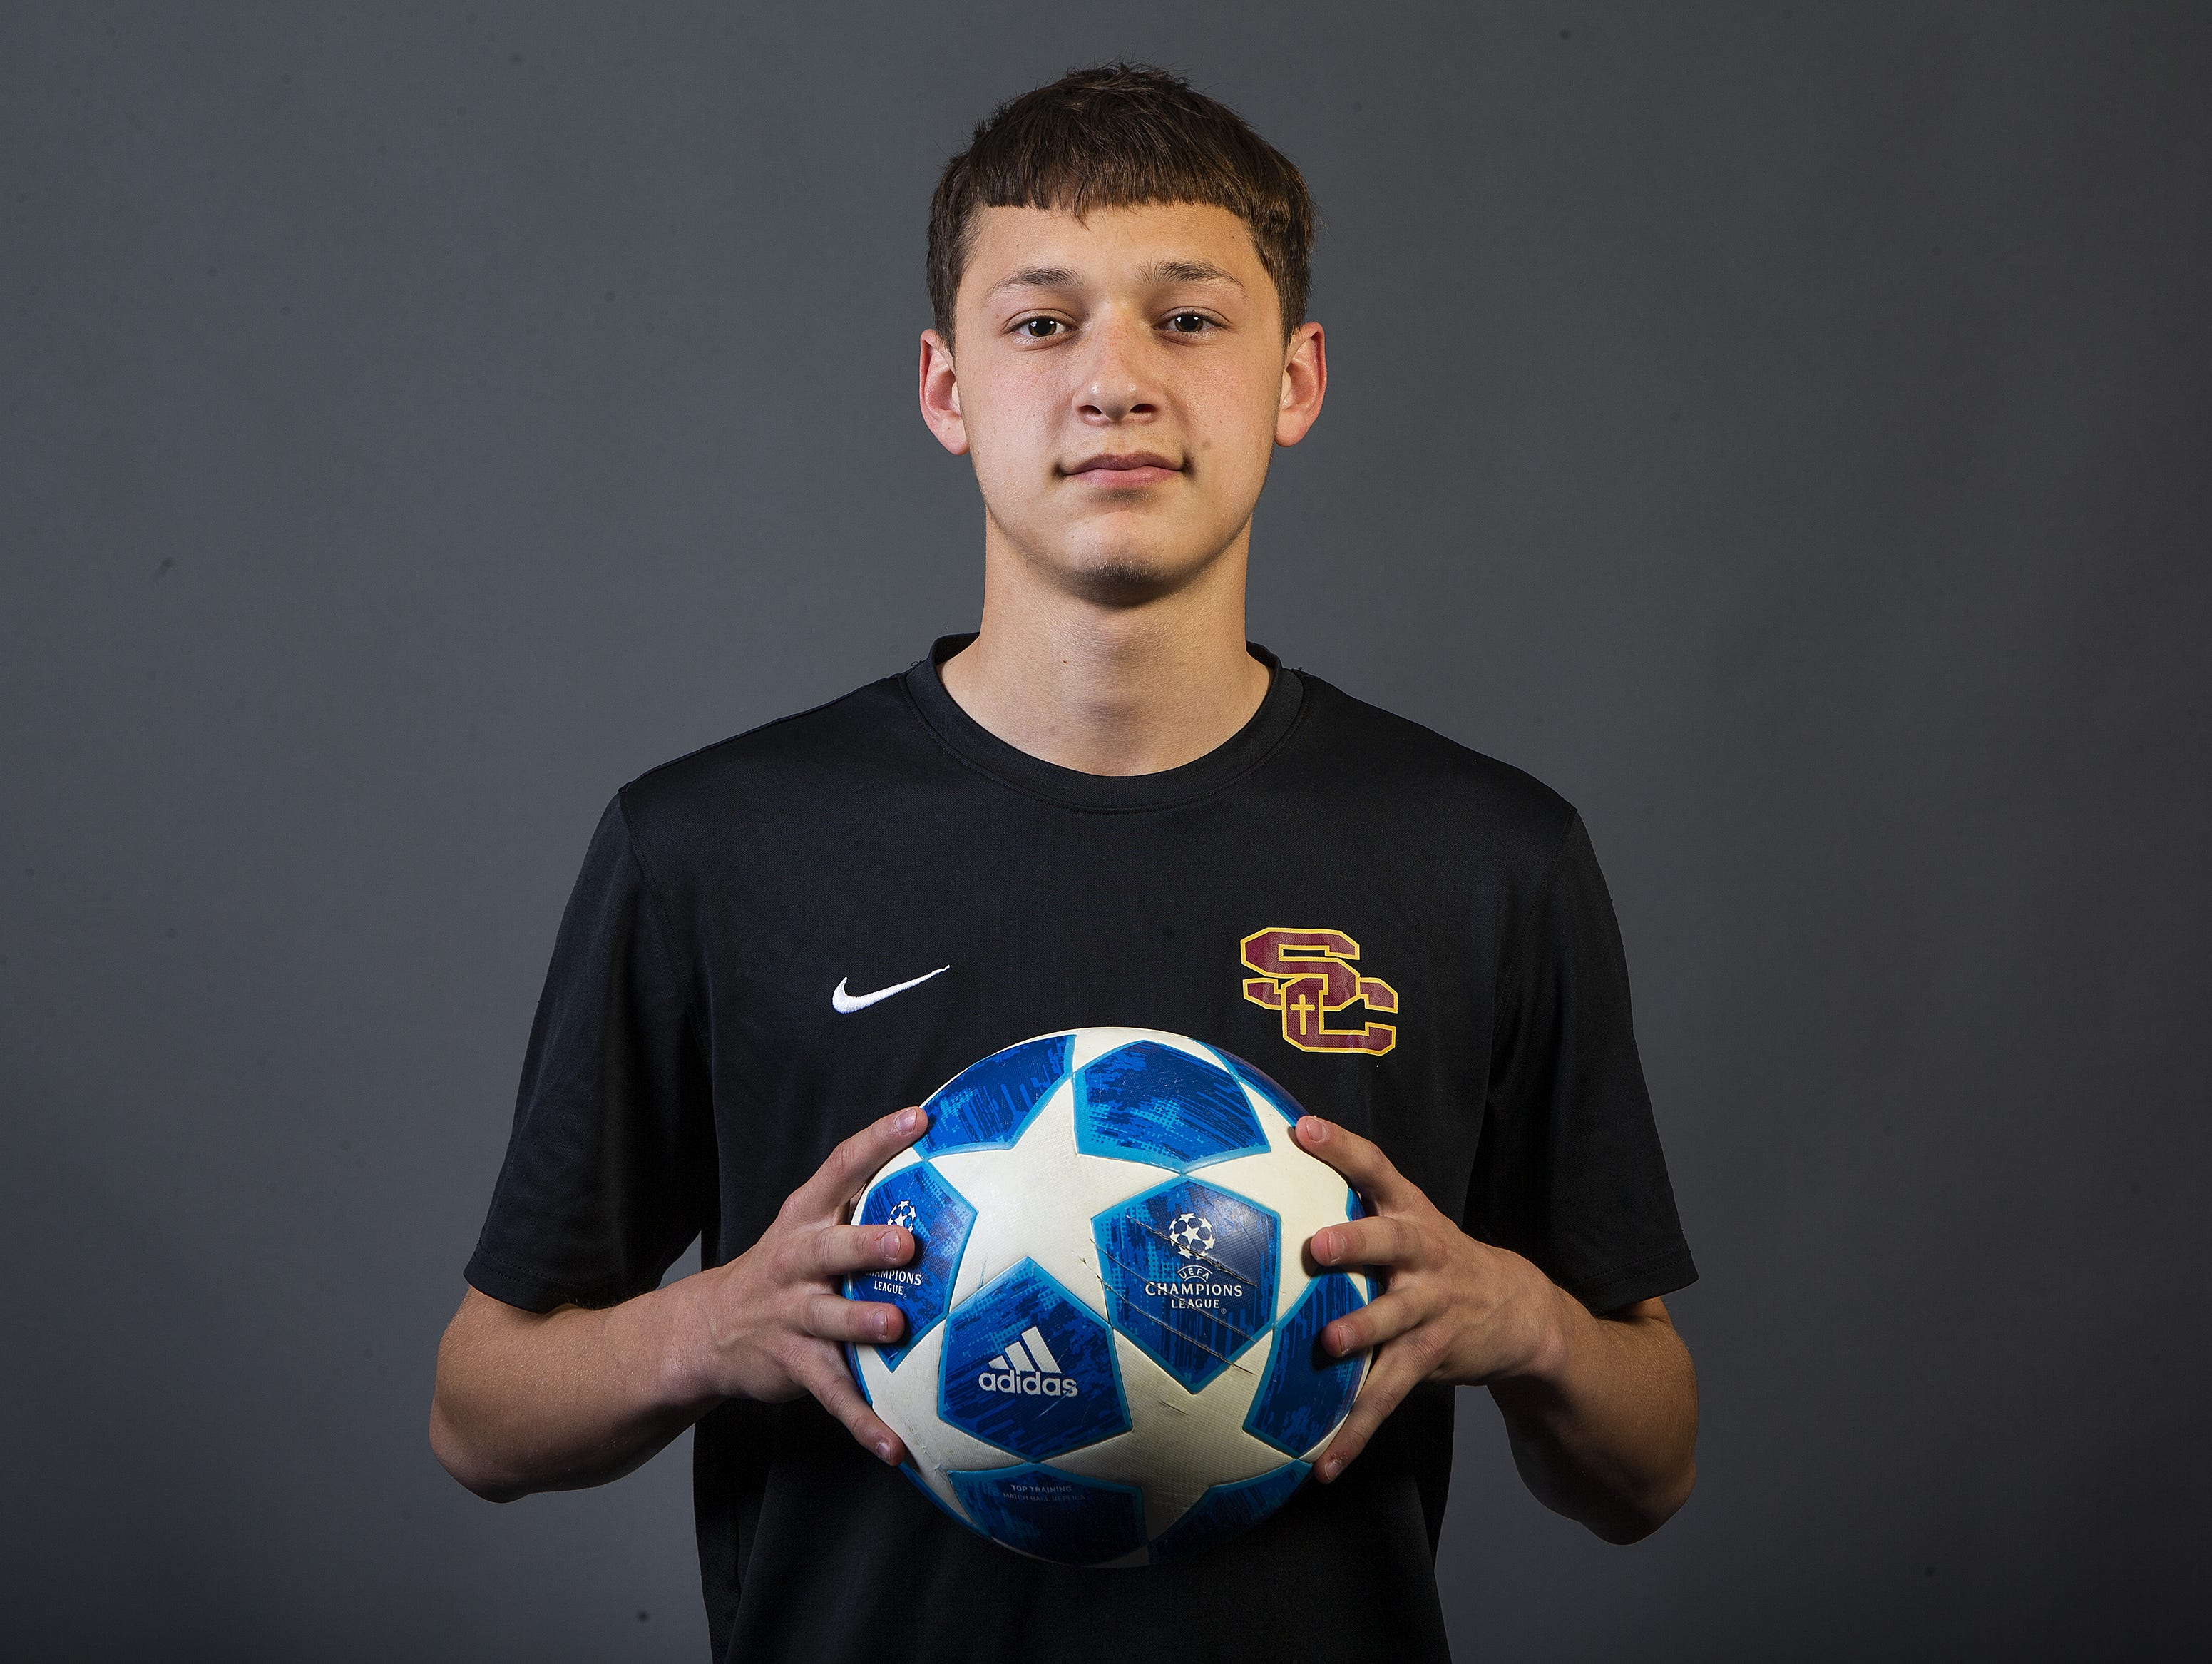 Boys Soccer Player of the Year nominee Francesco Manzo of Salpointe Catholic High School #azcsportsawards.